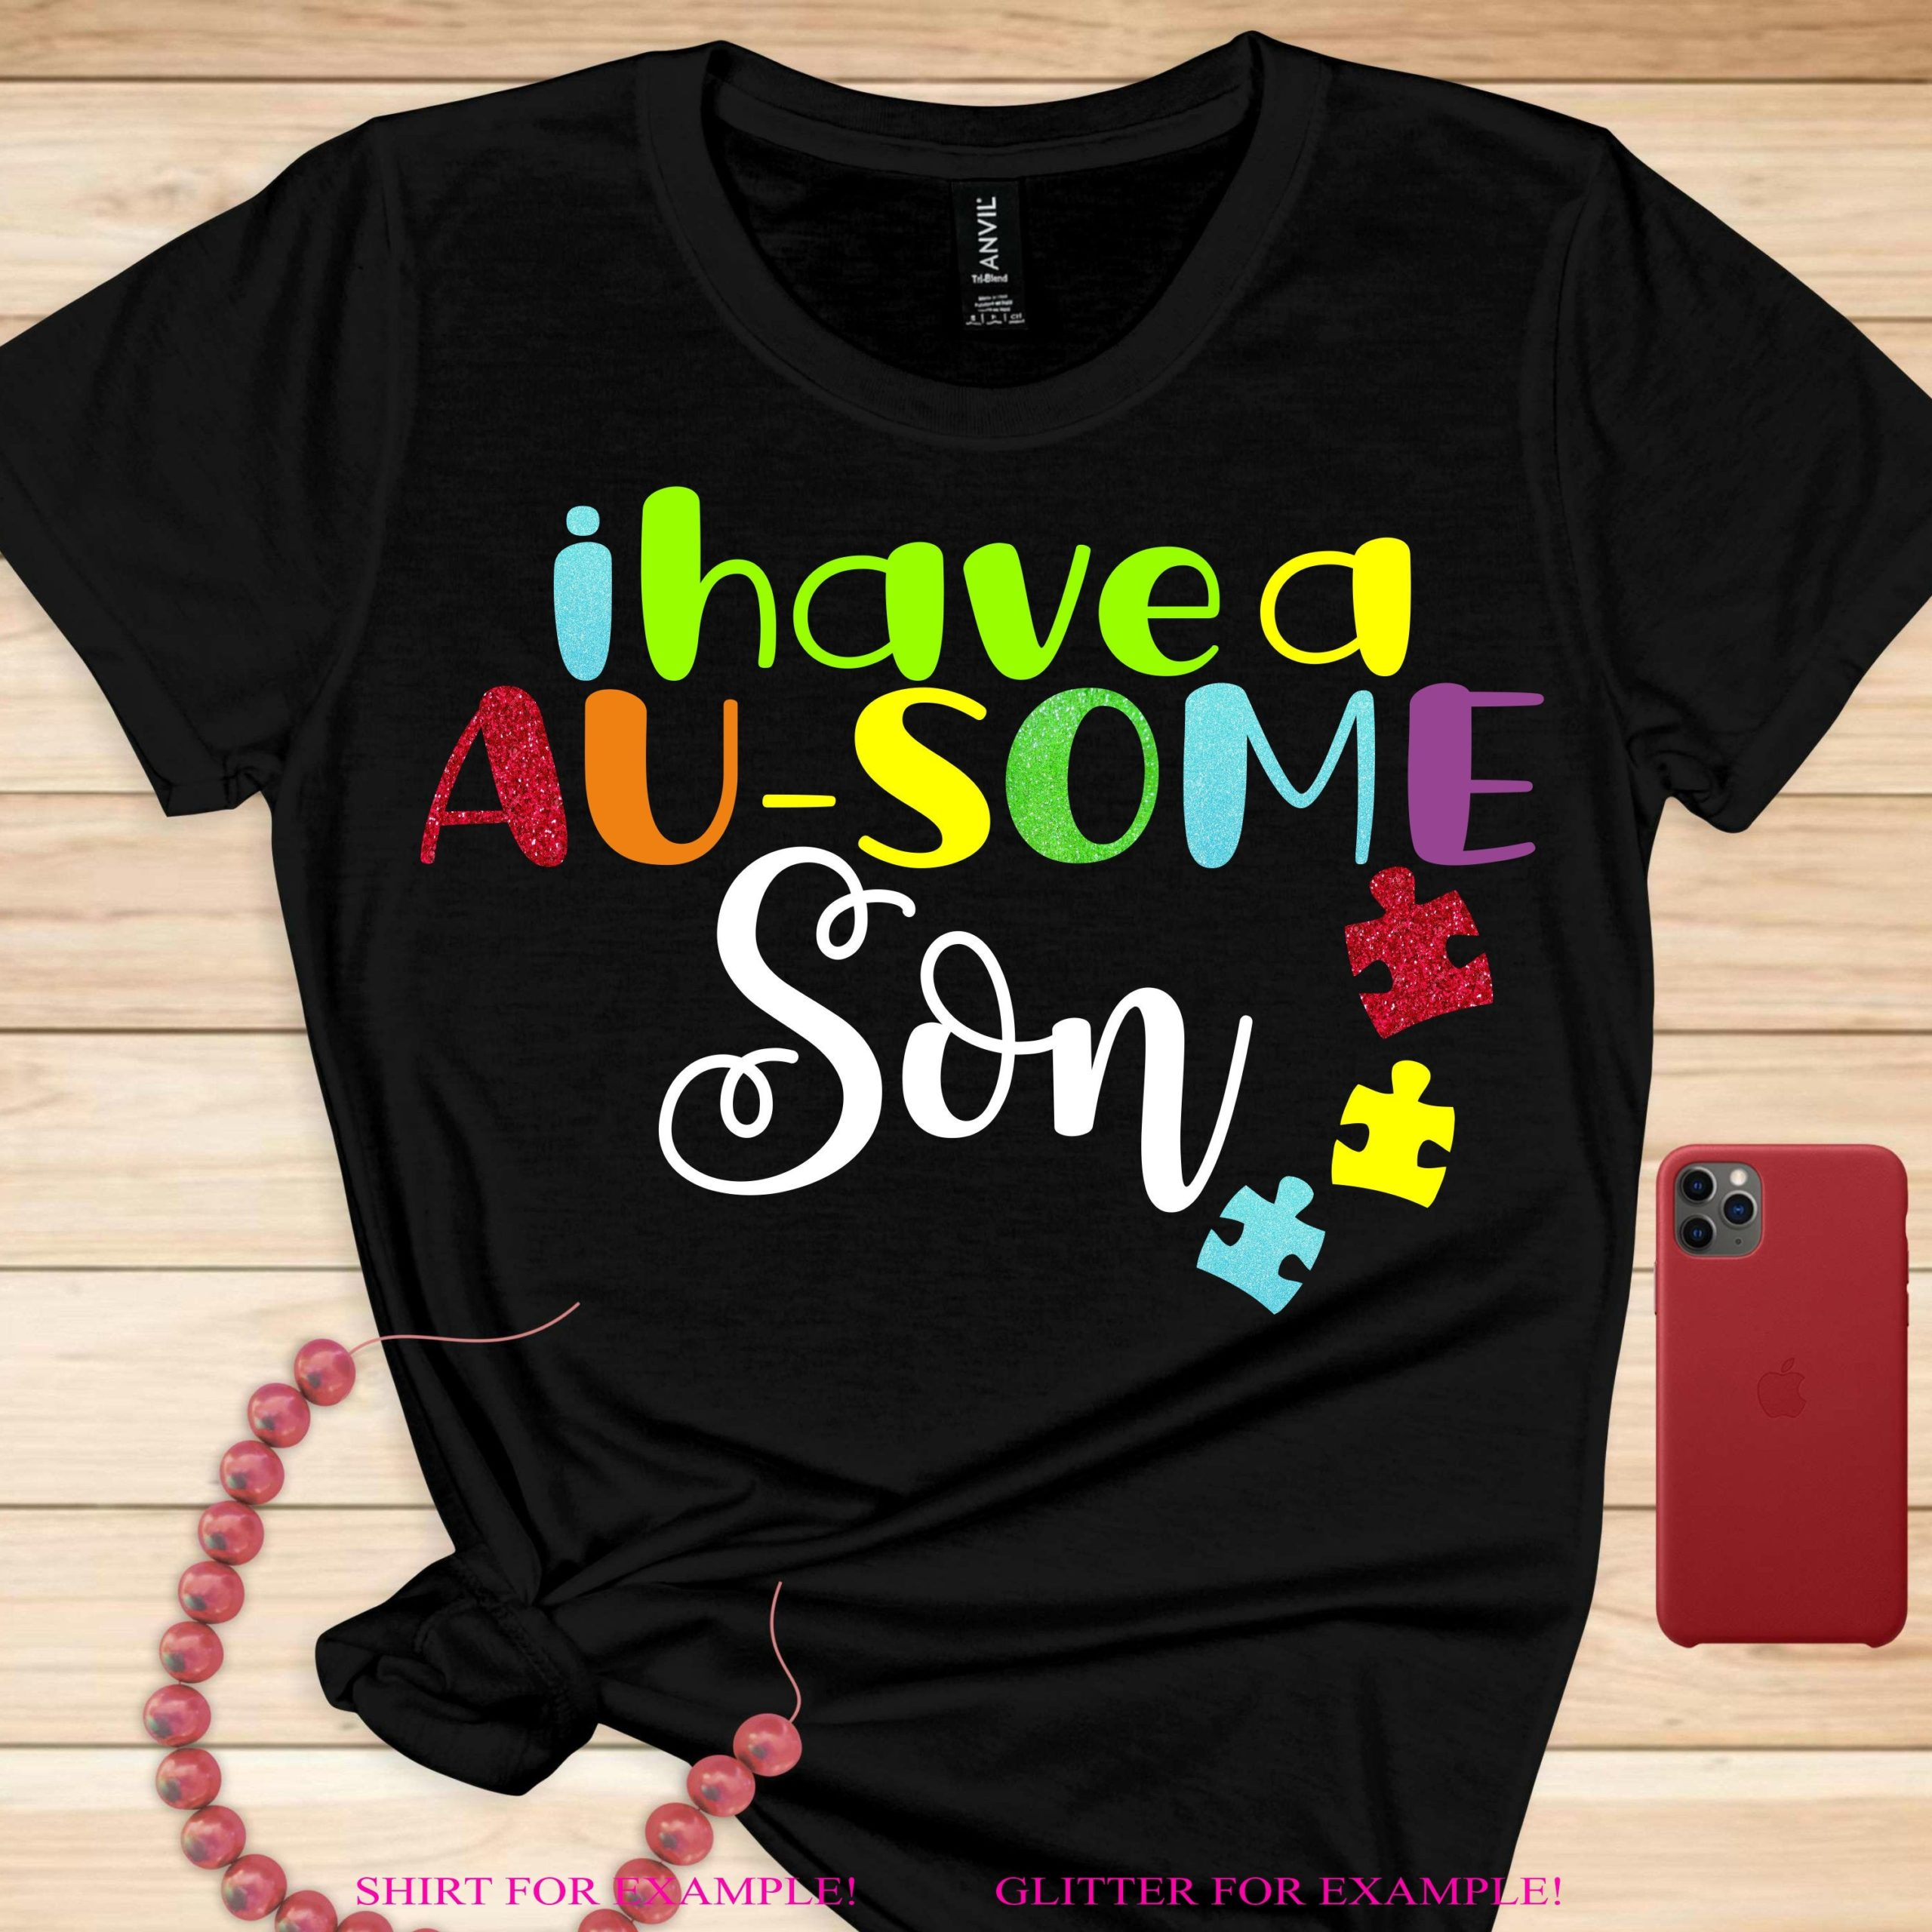 Ausome-son-svg-autism-svg-awareness-svg-autism-puzzle-svg-puzzle-svg-tshirt-svg-mom-svg-svg-for-cricut-silhouette-cut-file-5ef790d3